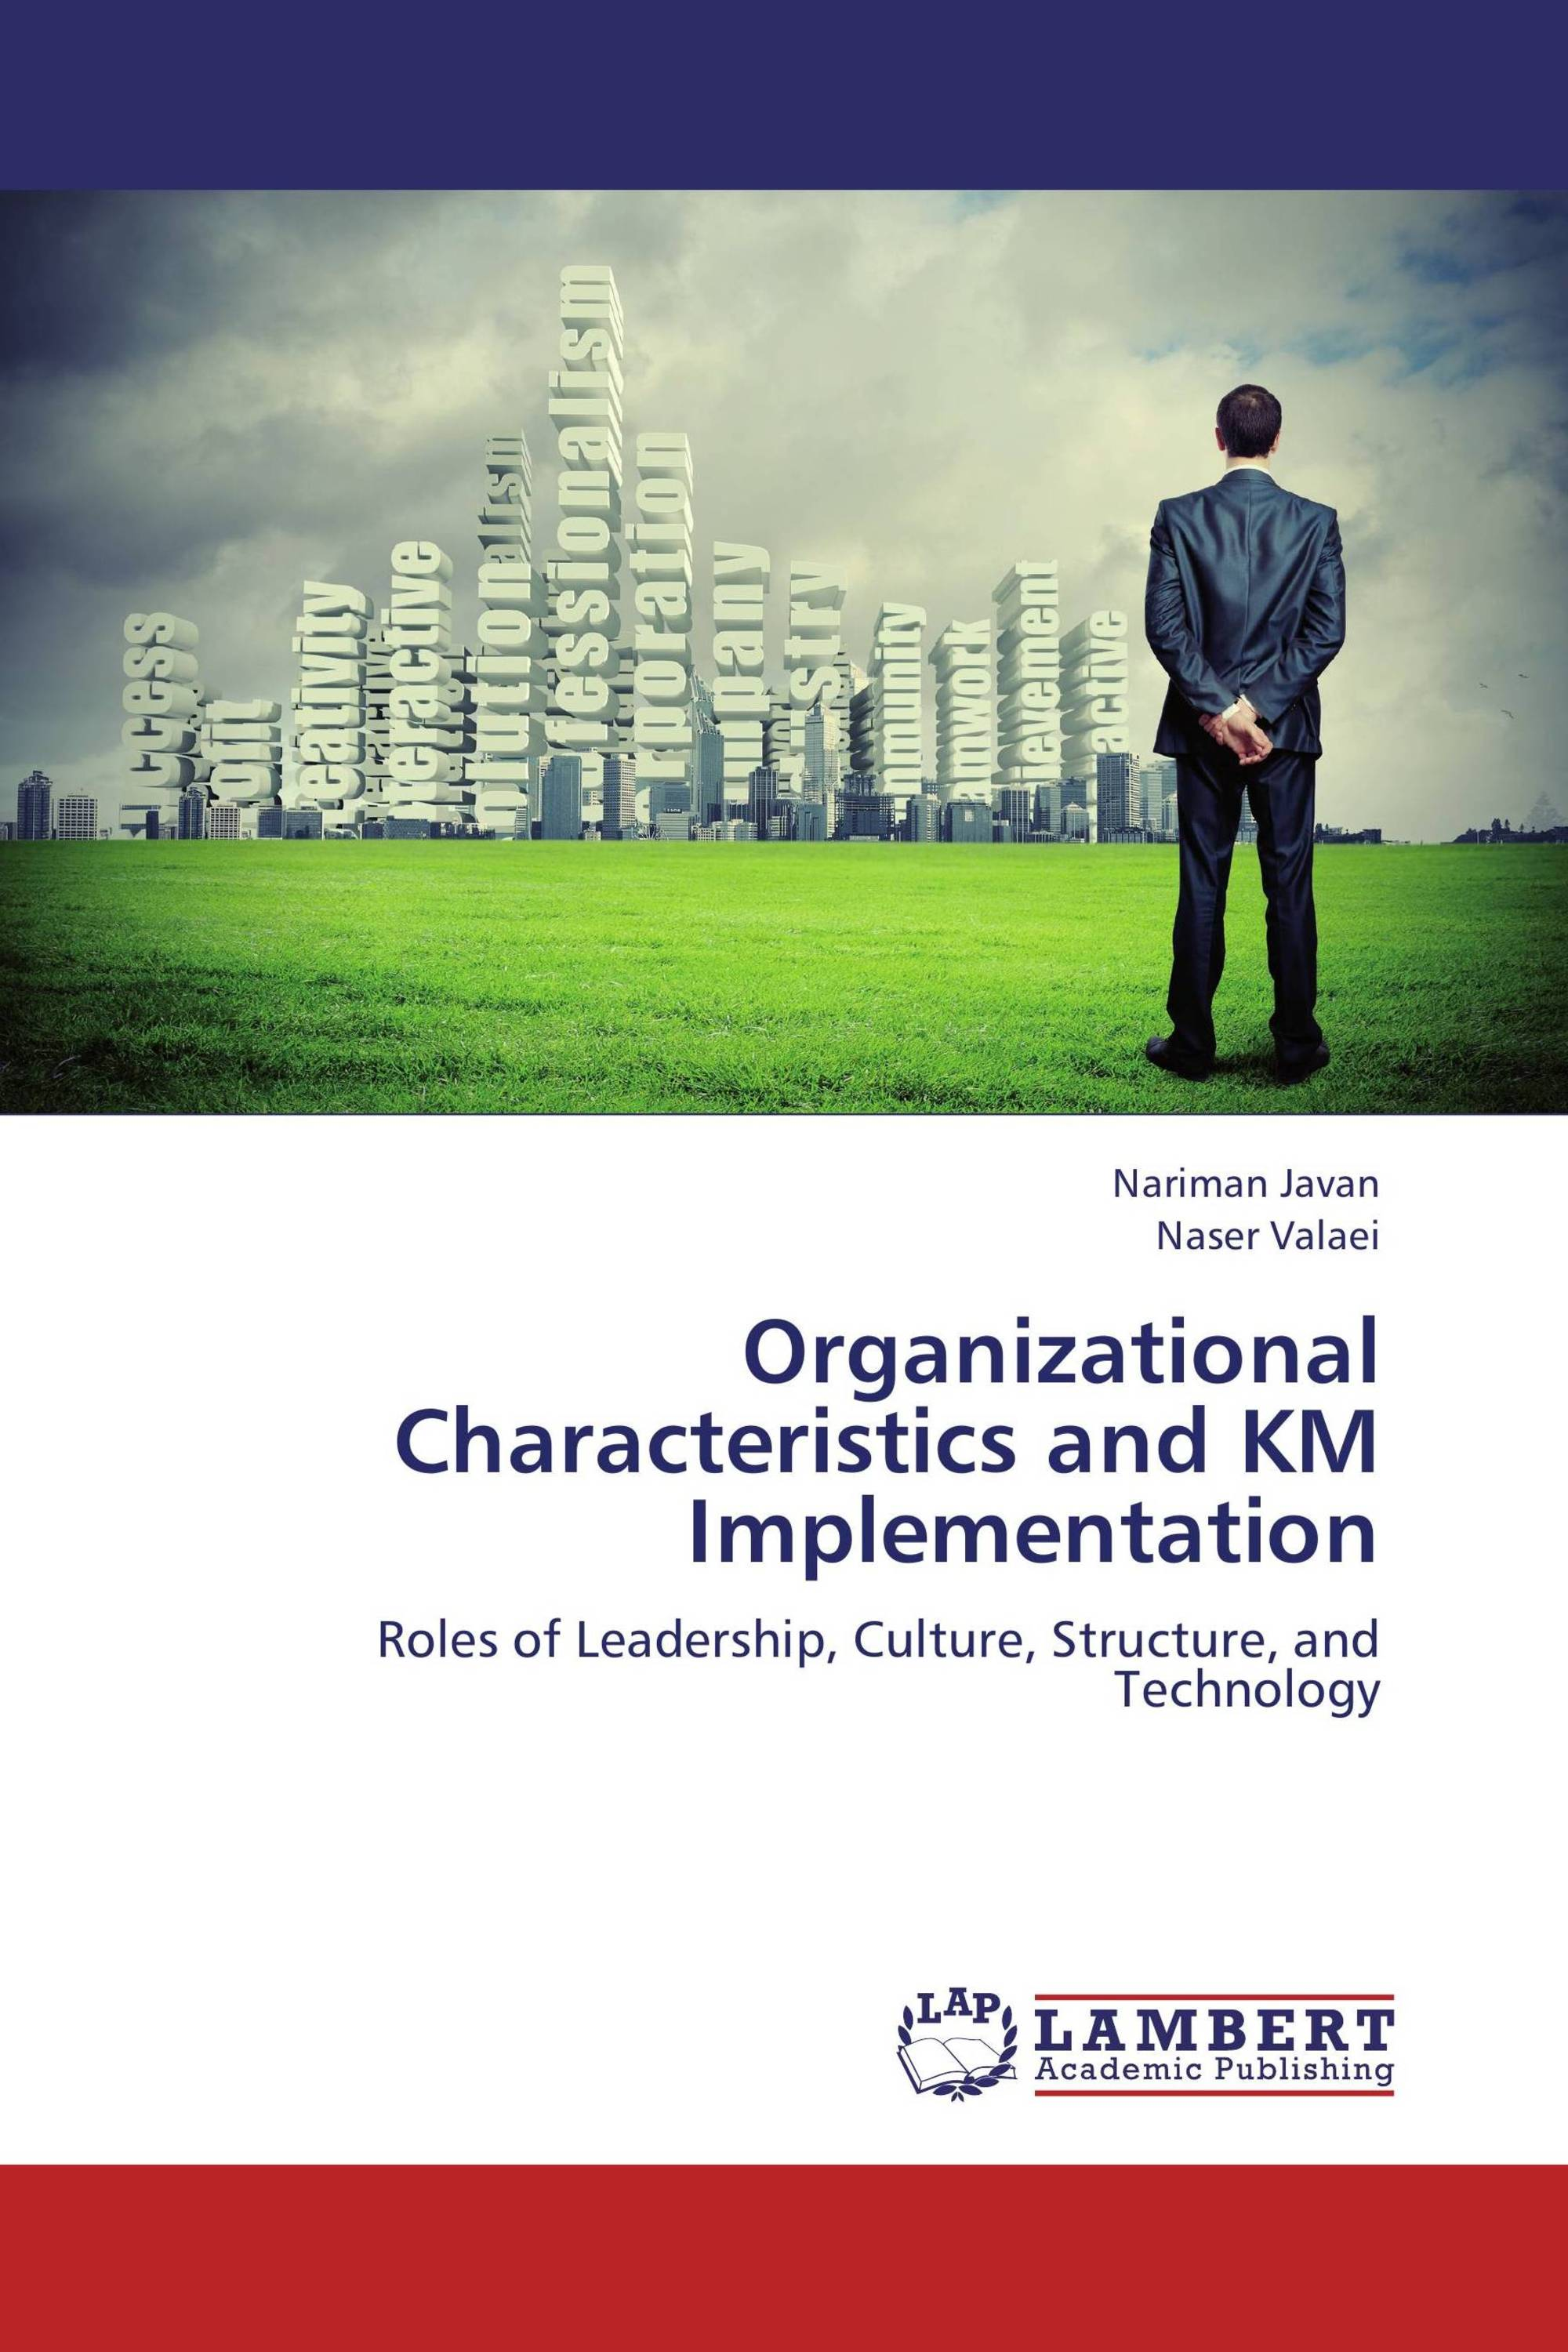 metaphors of management and organization in